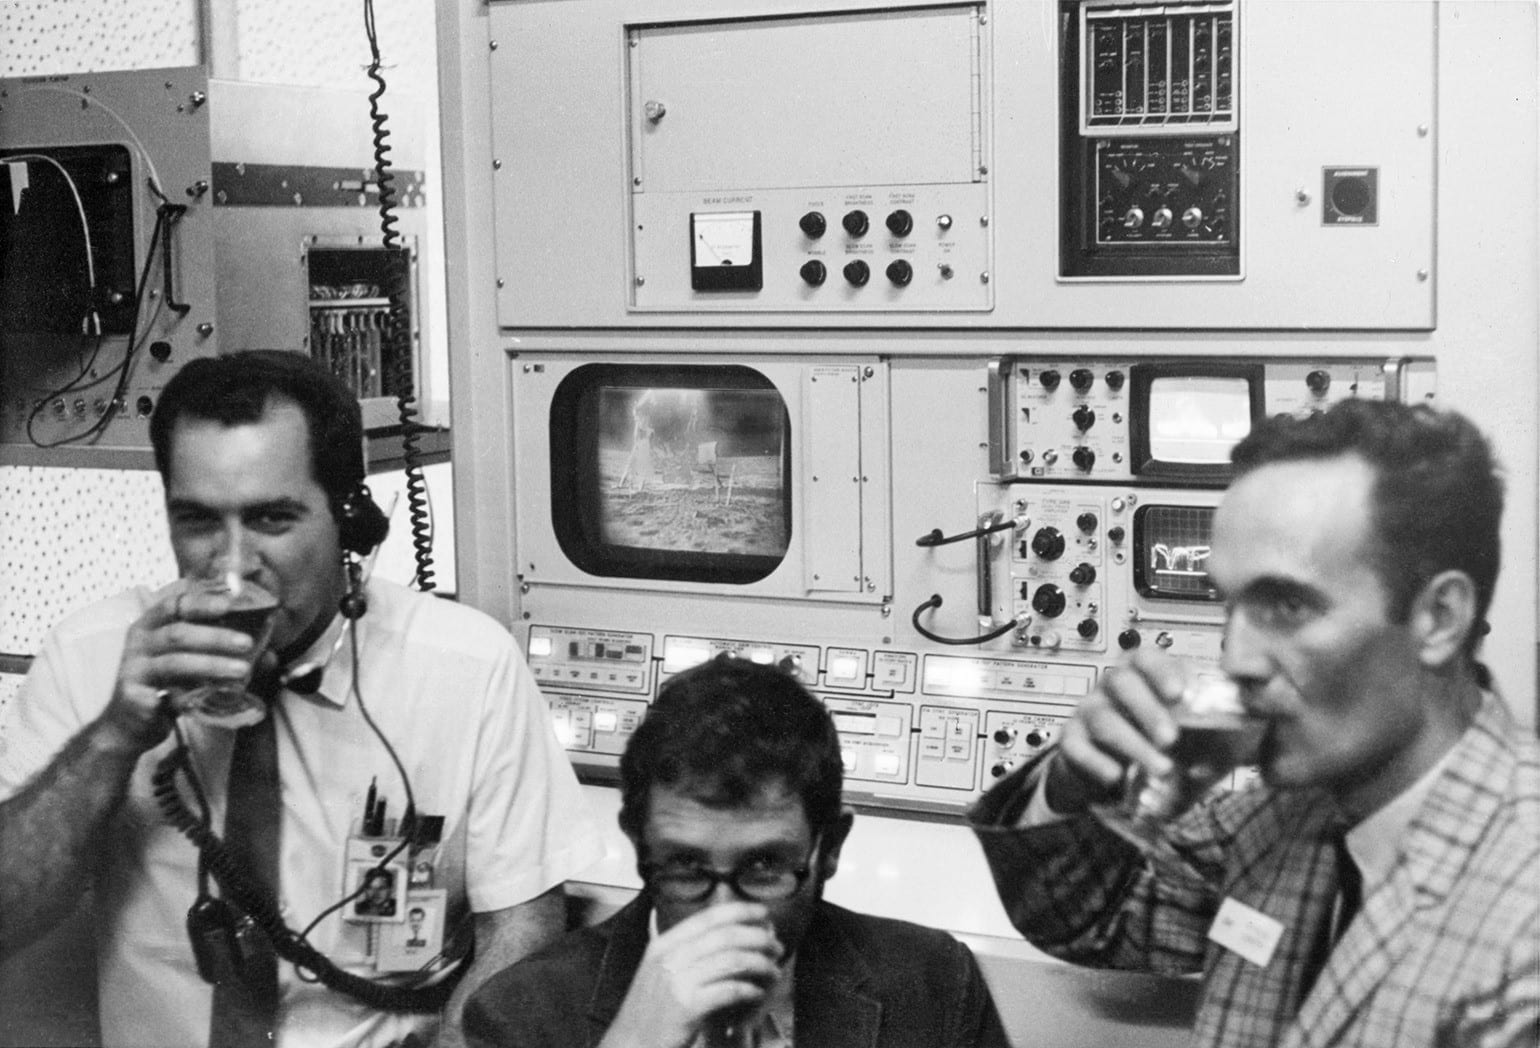 Three men seated drinking from glasses, seated in front of electronic equipment